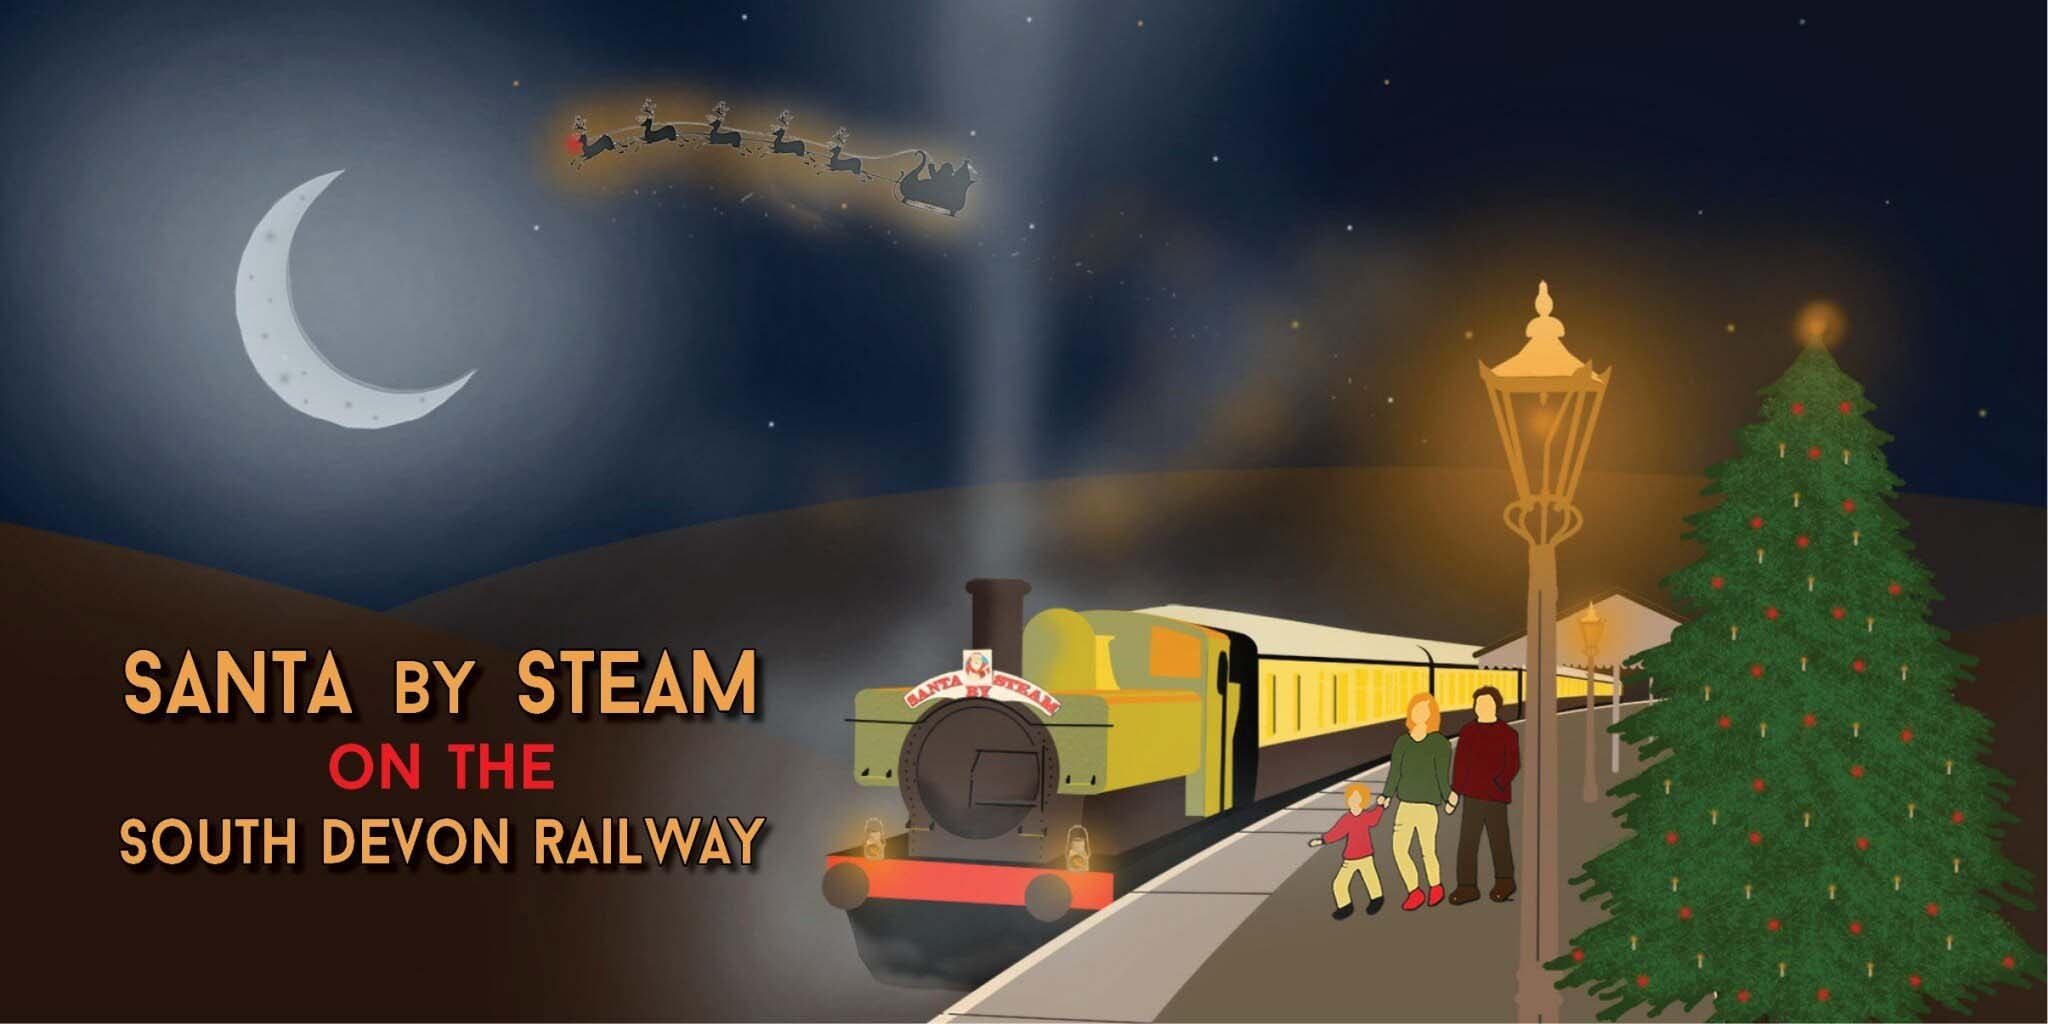 Steam trains and Santa specials with Kingfisher Giftwear